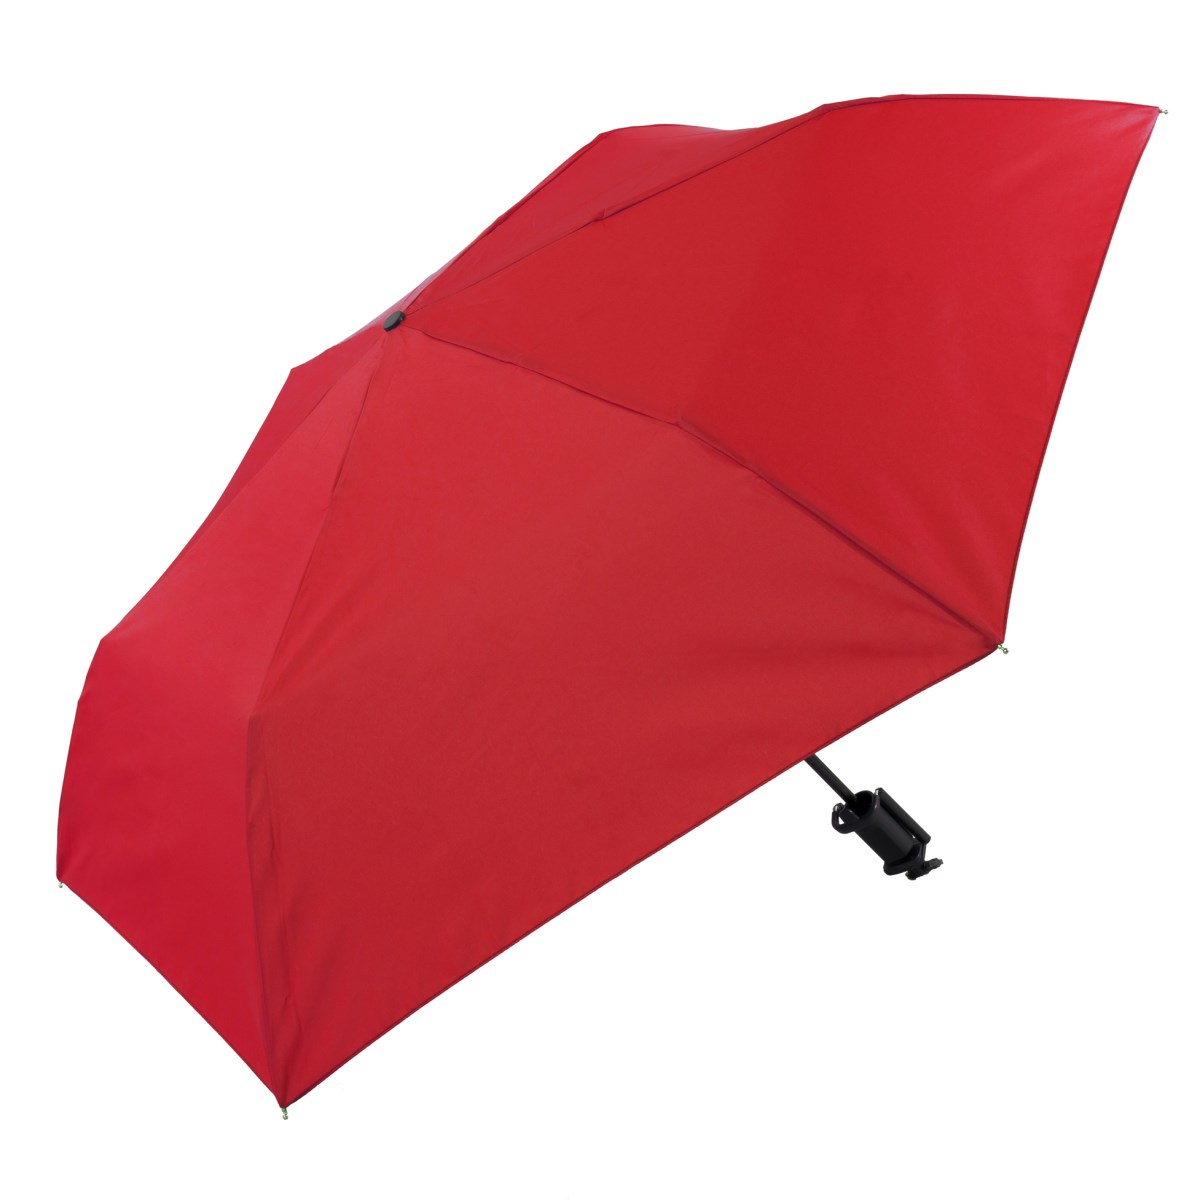 Novelty Red Selfie Stick Compact Umbrella (31705)